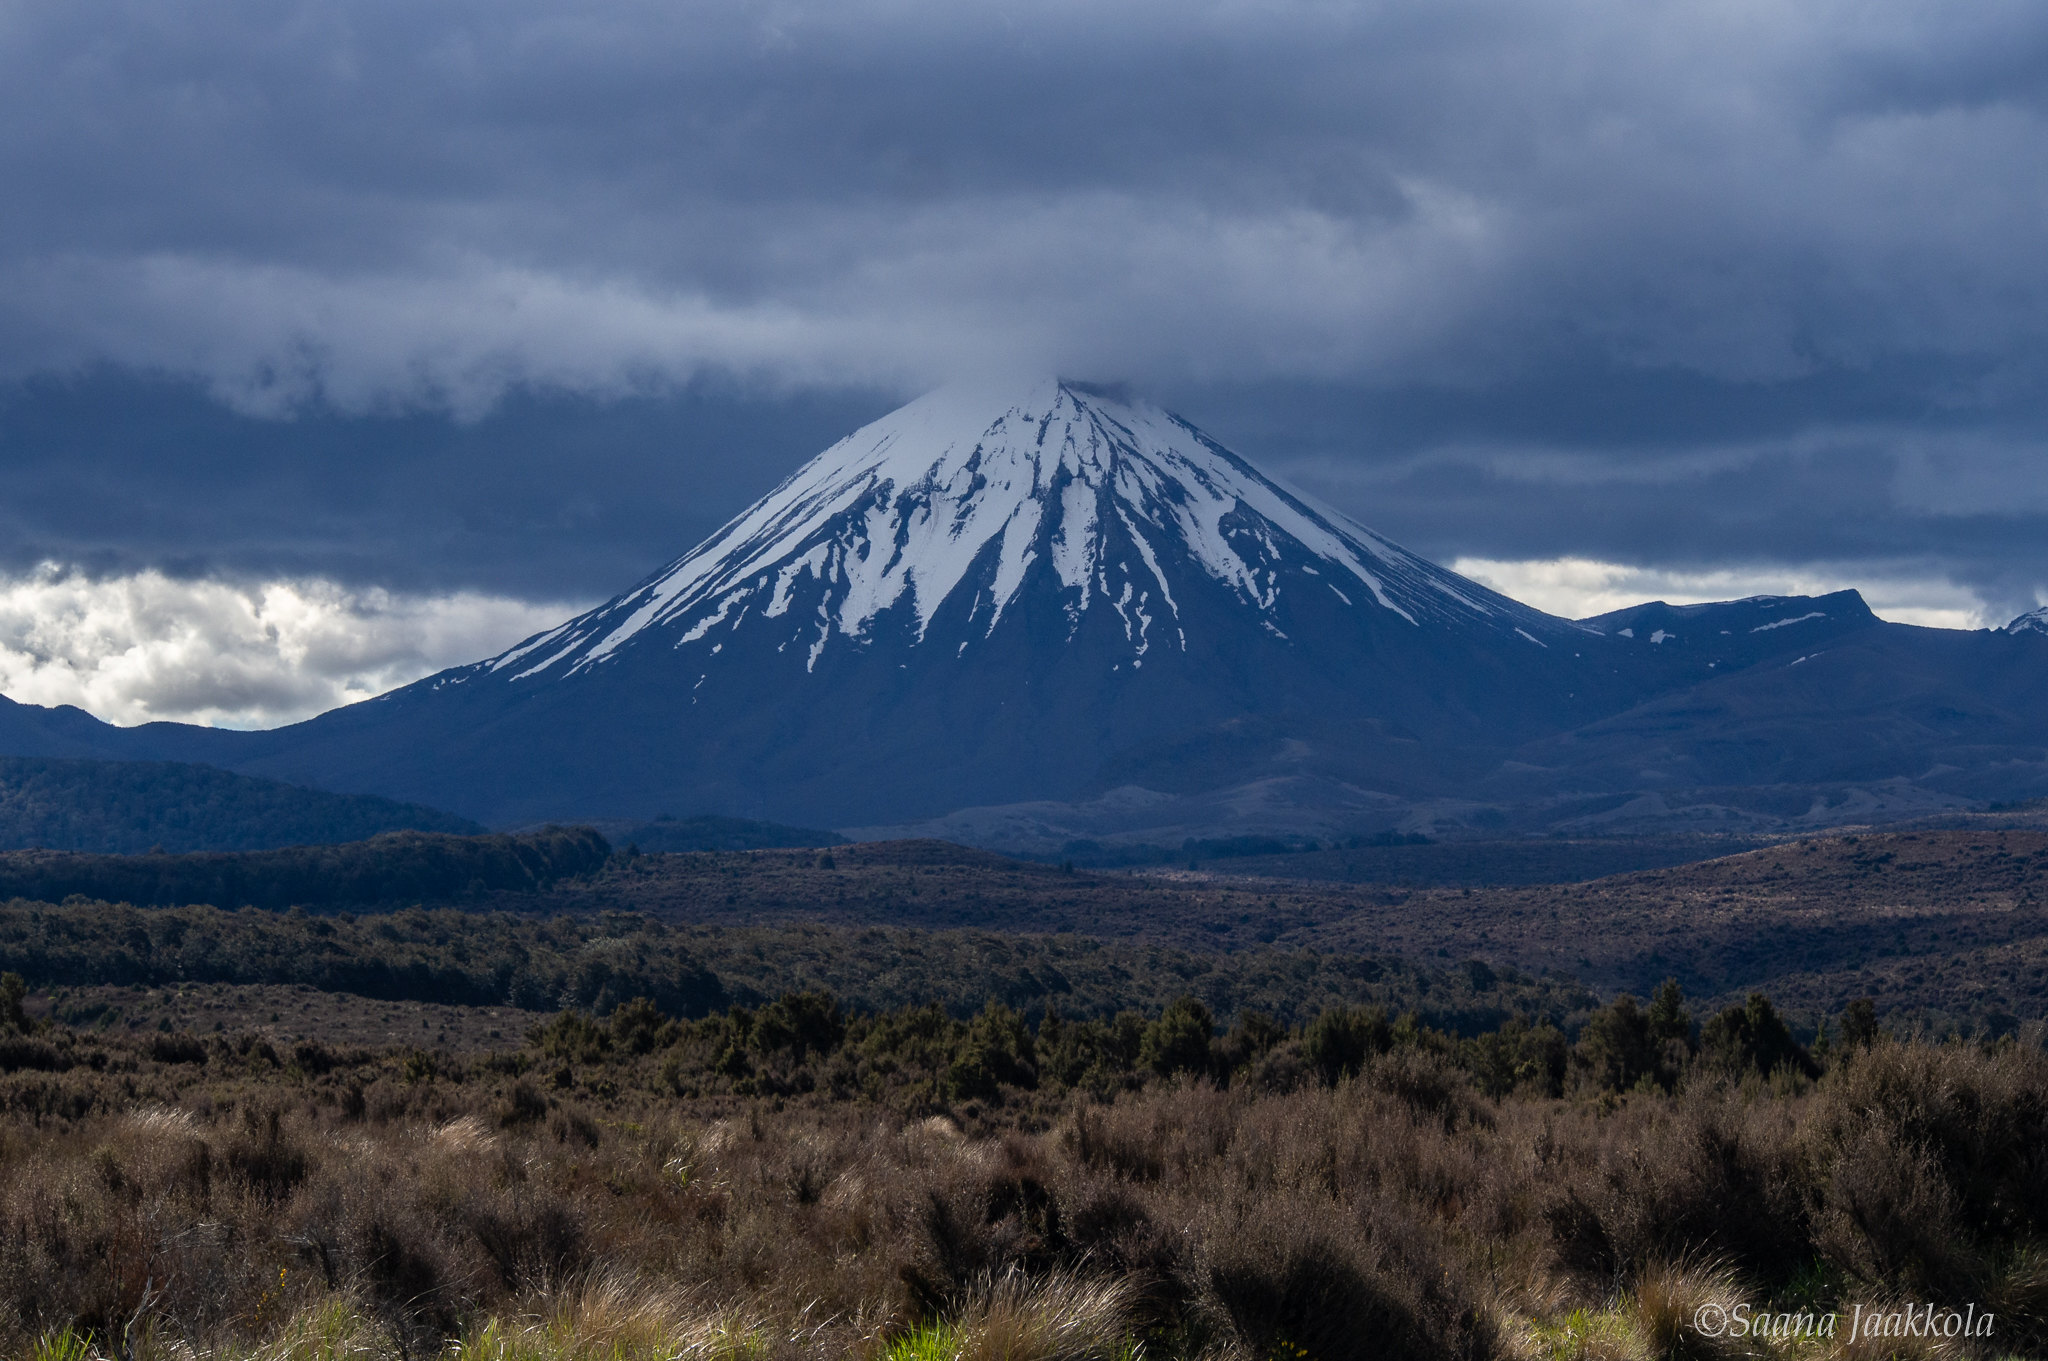 Tongariro National Park is home to New Zealand's most popular day hike, Tongariro Alpine Crossing